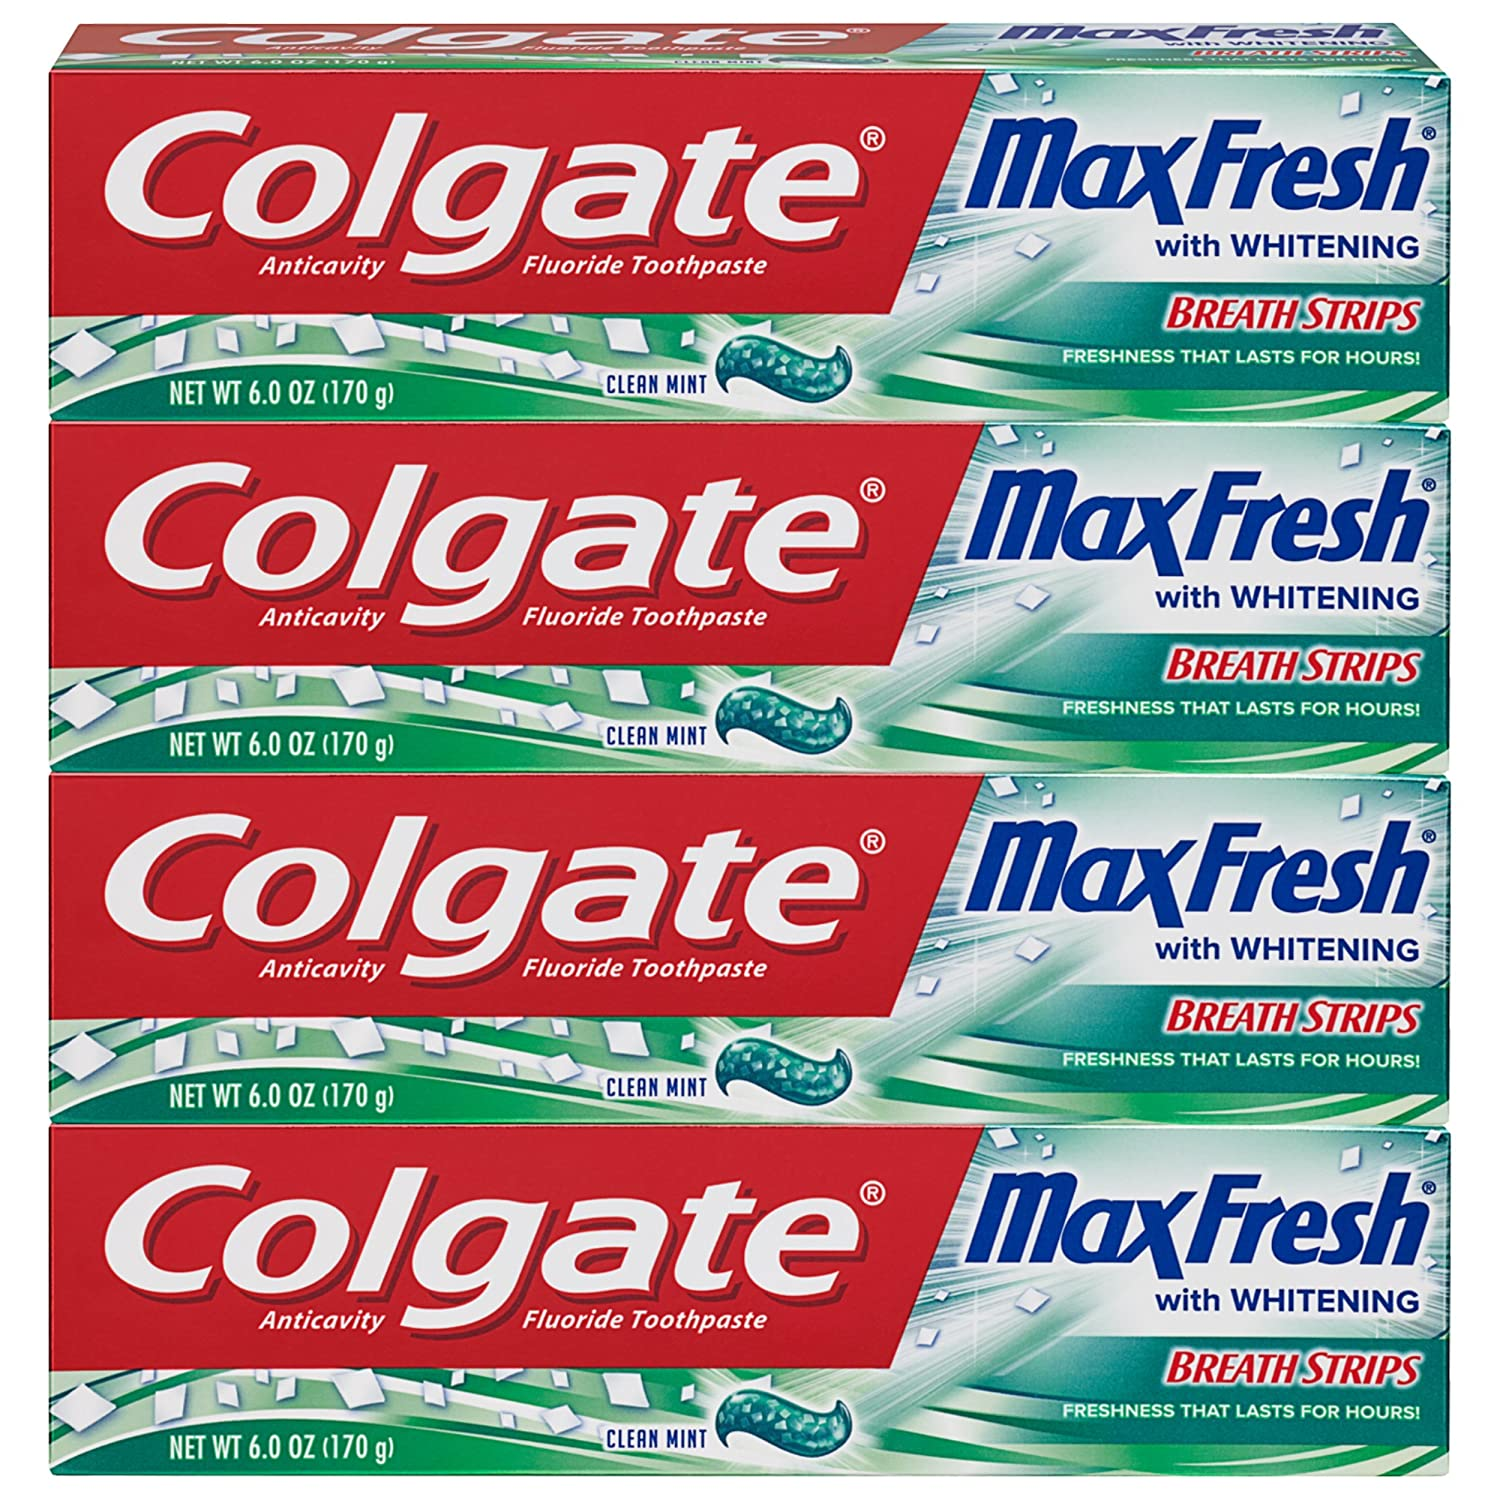 713c2bf1da6 Amazon.com  Colgate Max Fresh Whitening Toothpaste with Breath ...